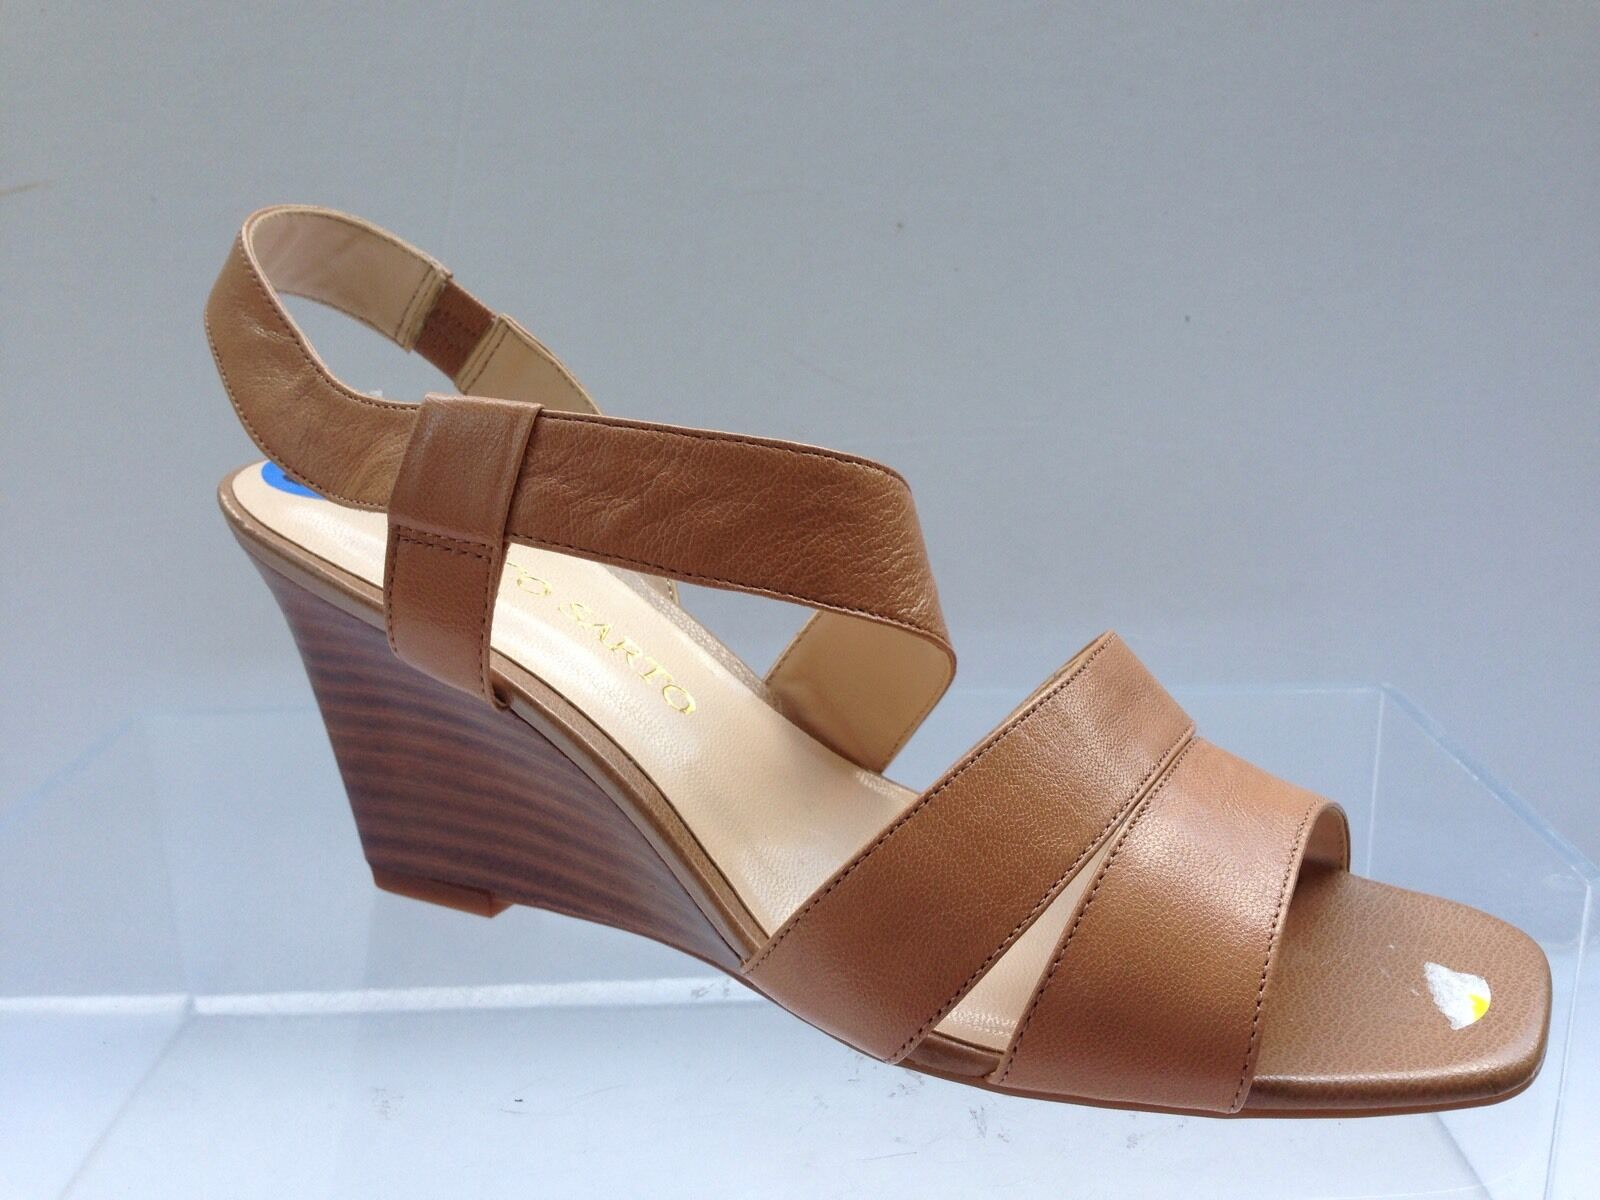 Display Franco Sarto TAMI Women Leather $110) Wedges Sz 6.5 (MSRP $110) Leather 76c164